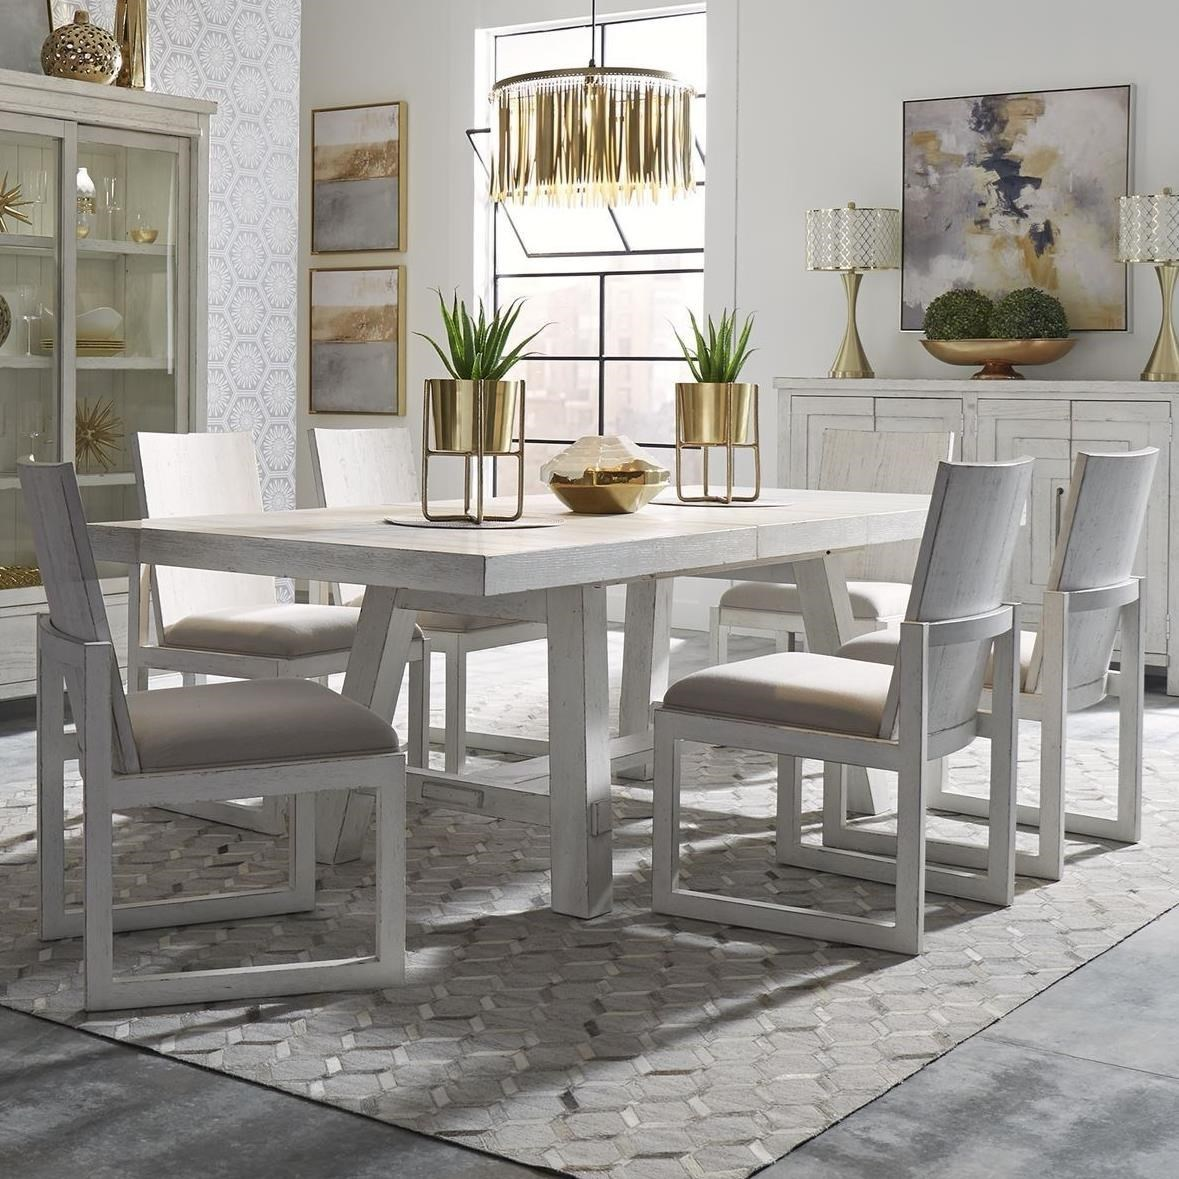 Modern Farmhouse 7-Piece Trestle Table and Chair Set by Liberty Furniture at Suburban Furniture